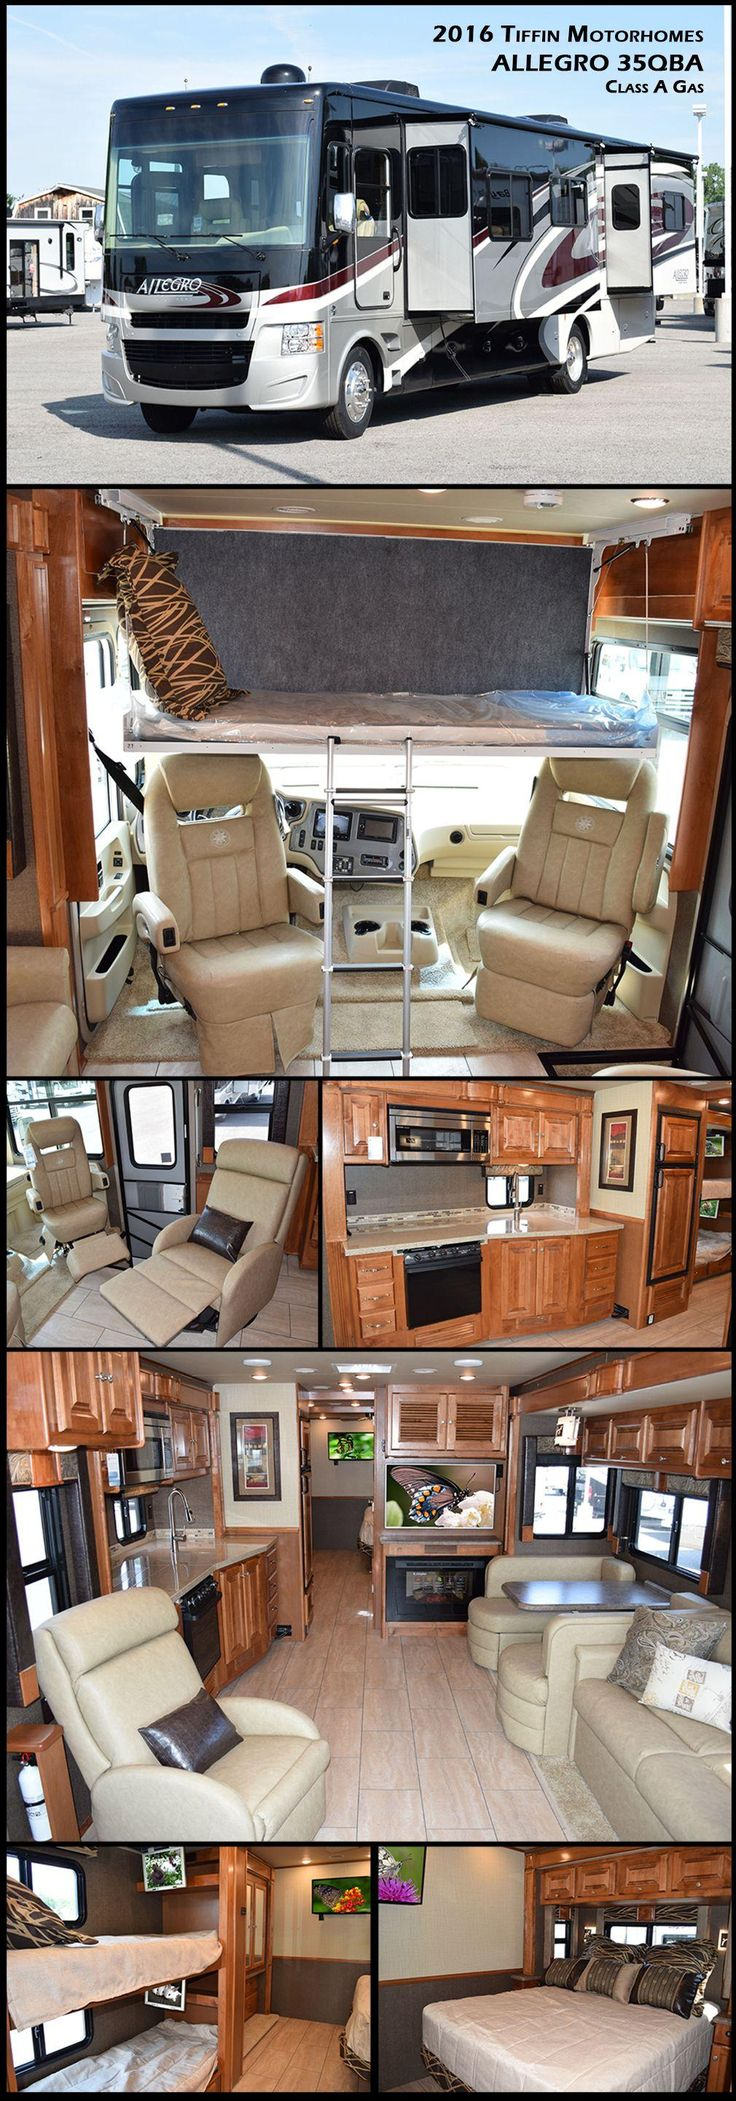 has lots of sleeping space (also can add a small cot across driver and passenger front seats)